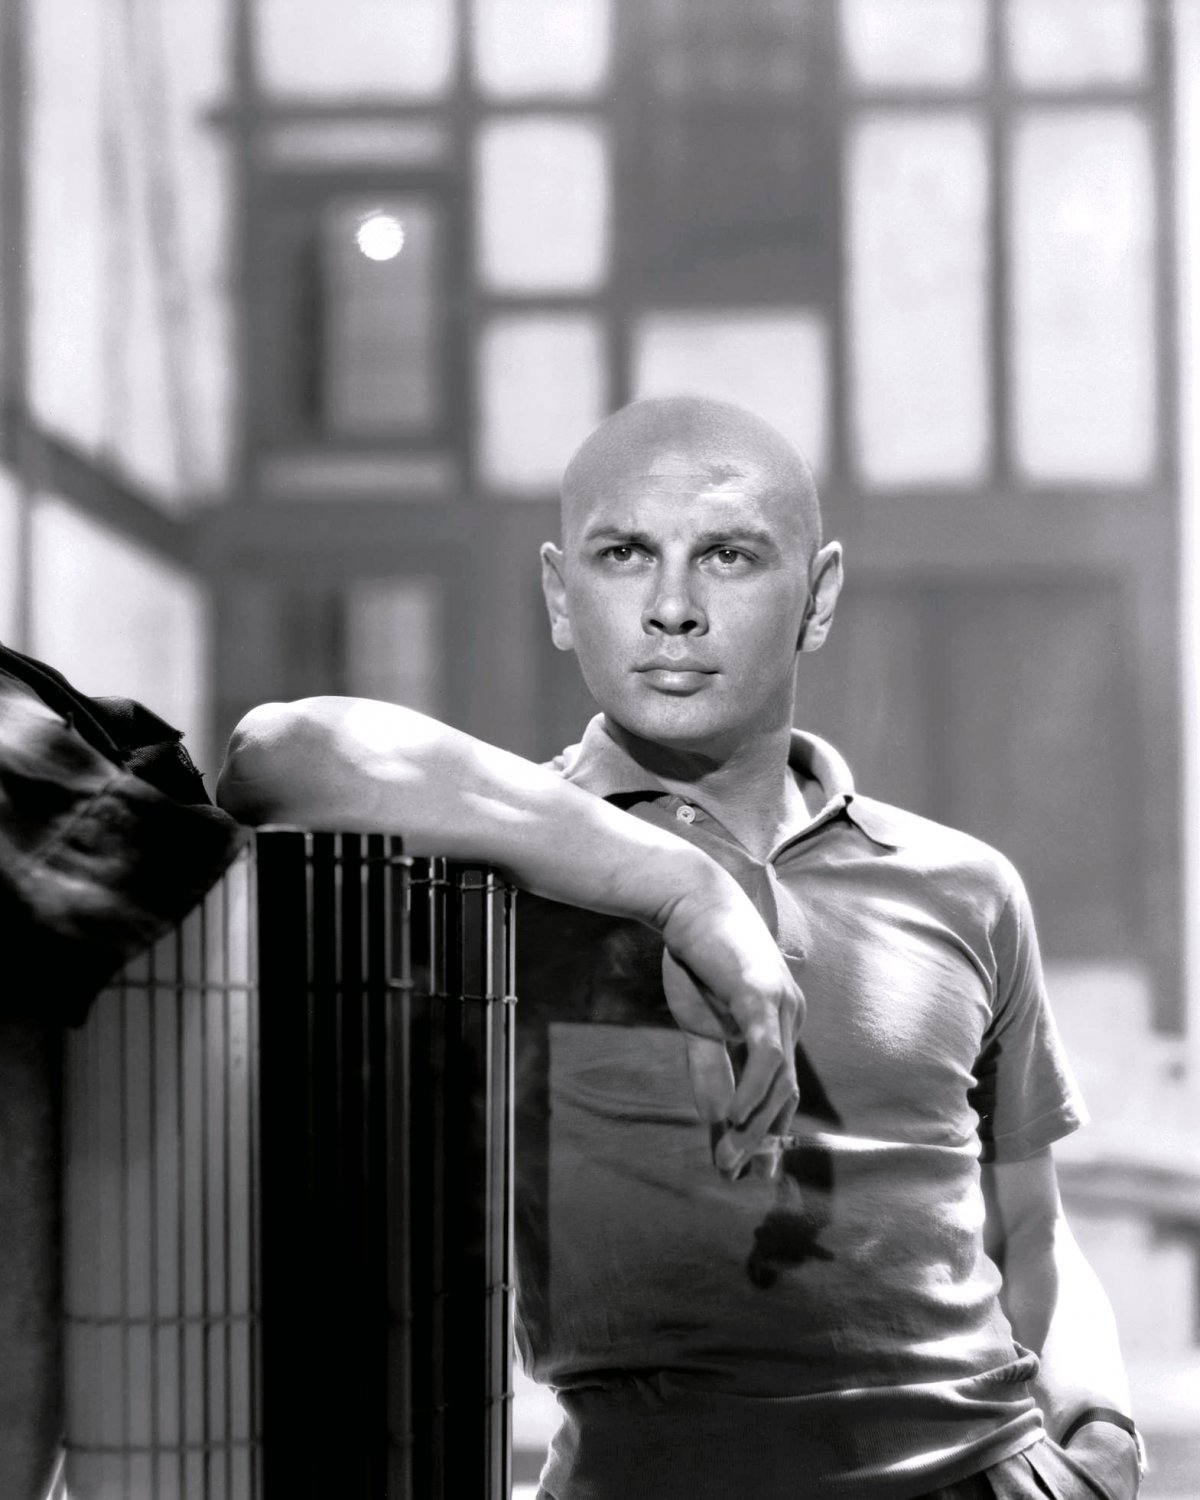 YUL BRYNNER LEGENDARY ACTOR - 8X10 PUBLICITY PHOTO (OP-040)